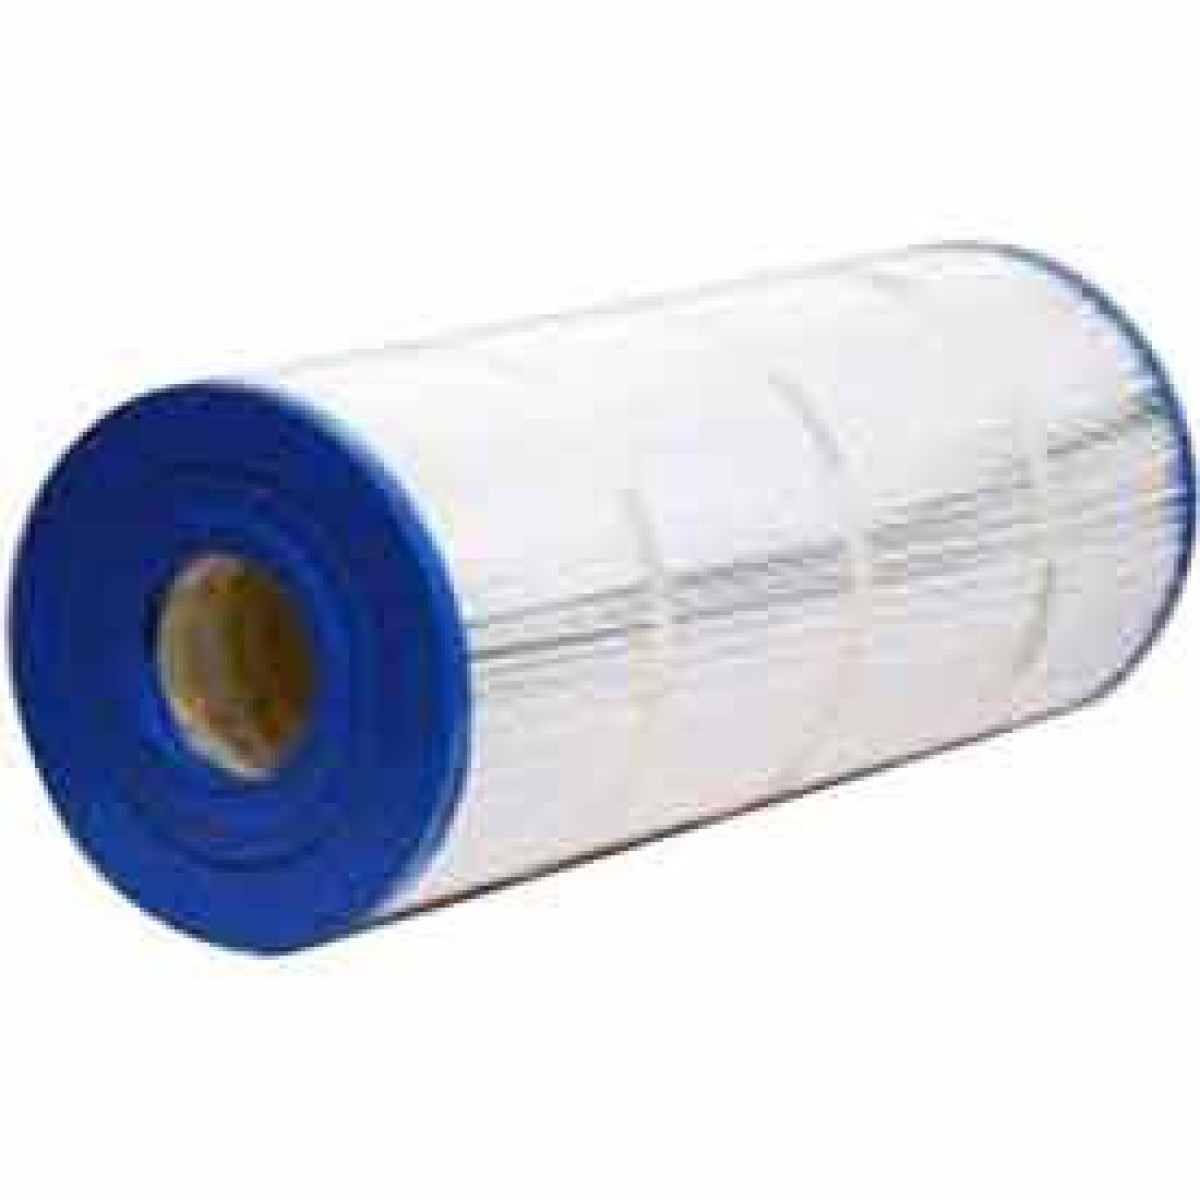 Pleatco pfw110 pool and spa replacement filter for Obi filtersand pool